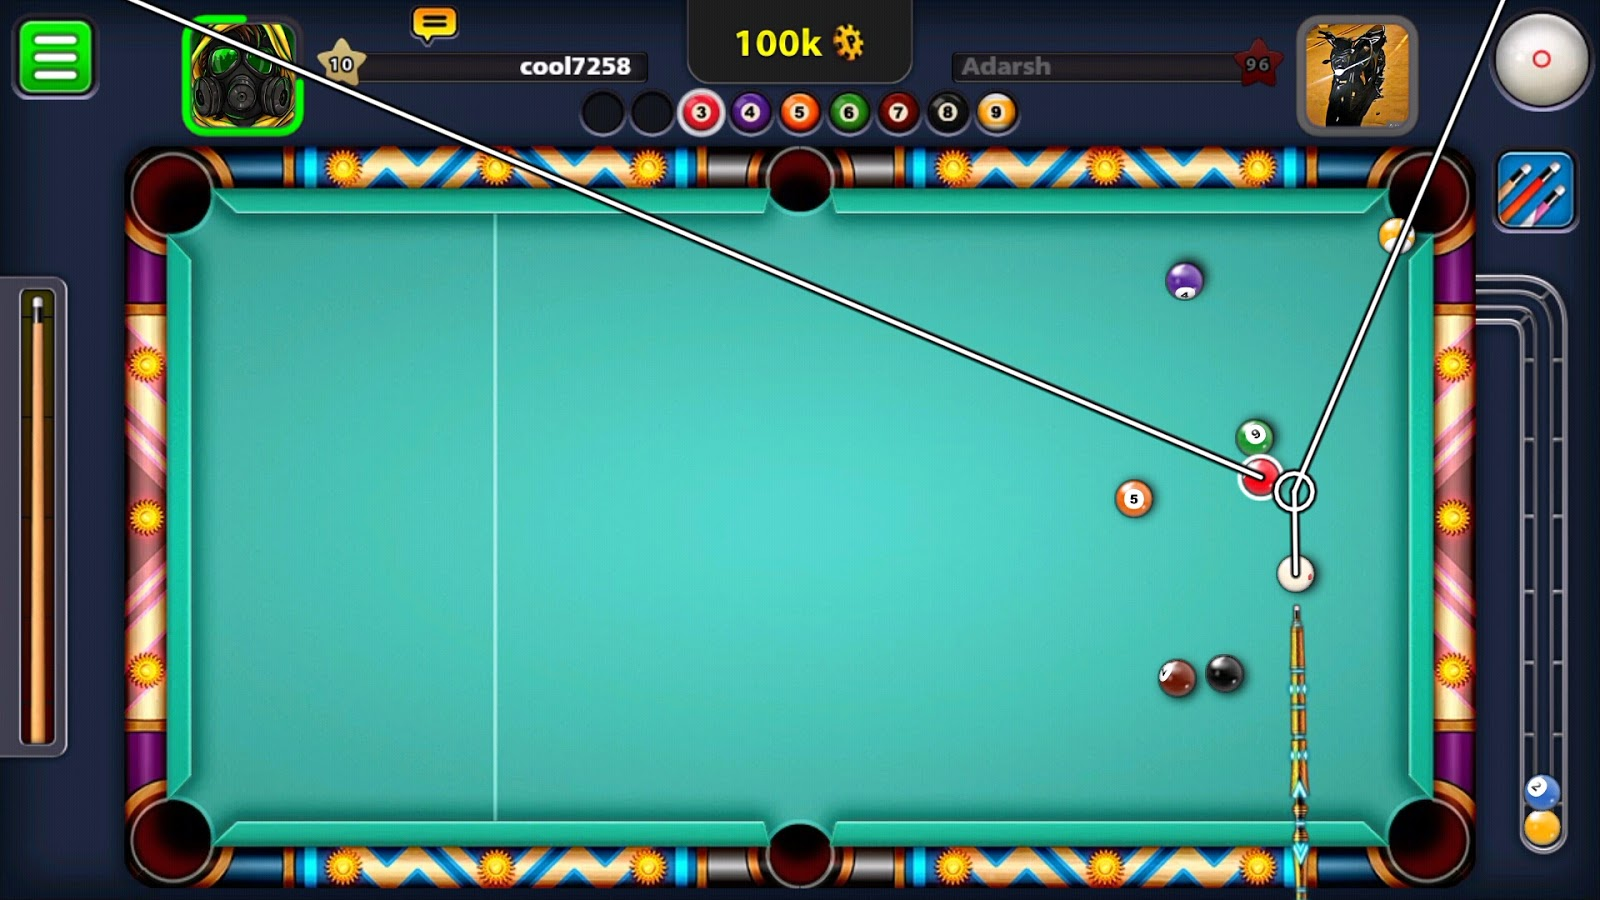 8 Ball Pool 3 12 1 MOD Apk (Extended Stick Guideline, Auto